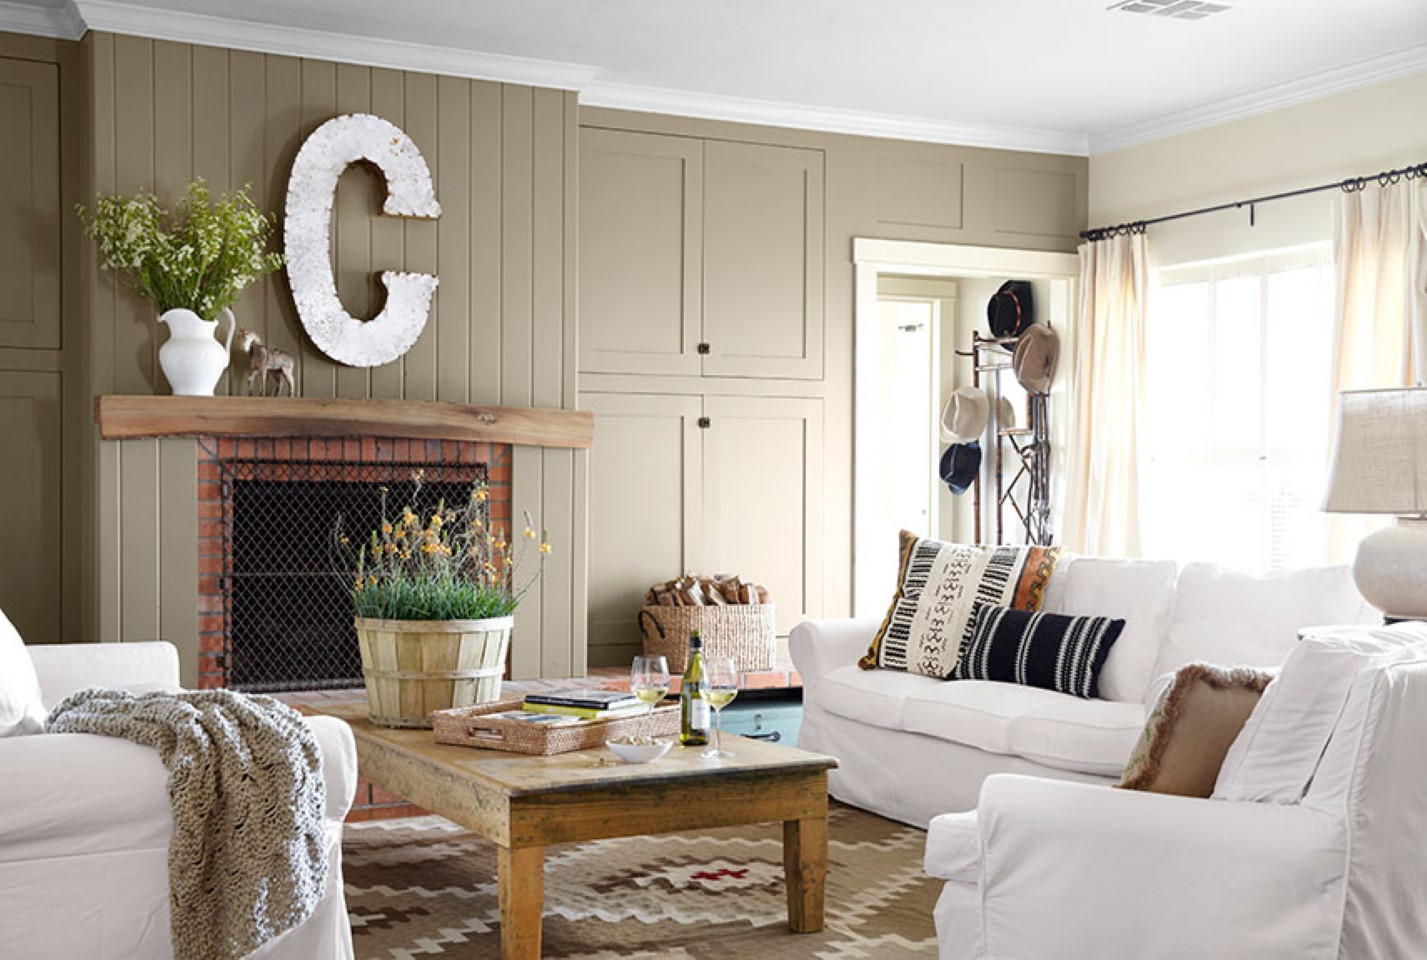 Best ideas about Country Living Room . Save or Pin Country Living Room Appears Appealing Interior Designoursign Now.